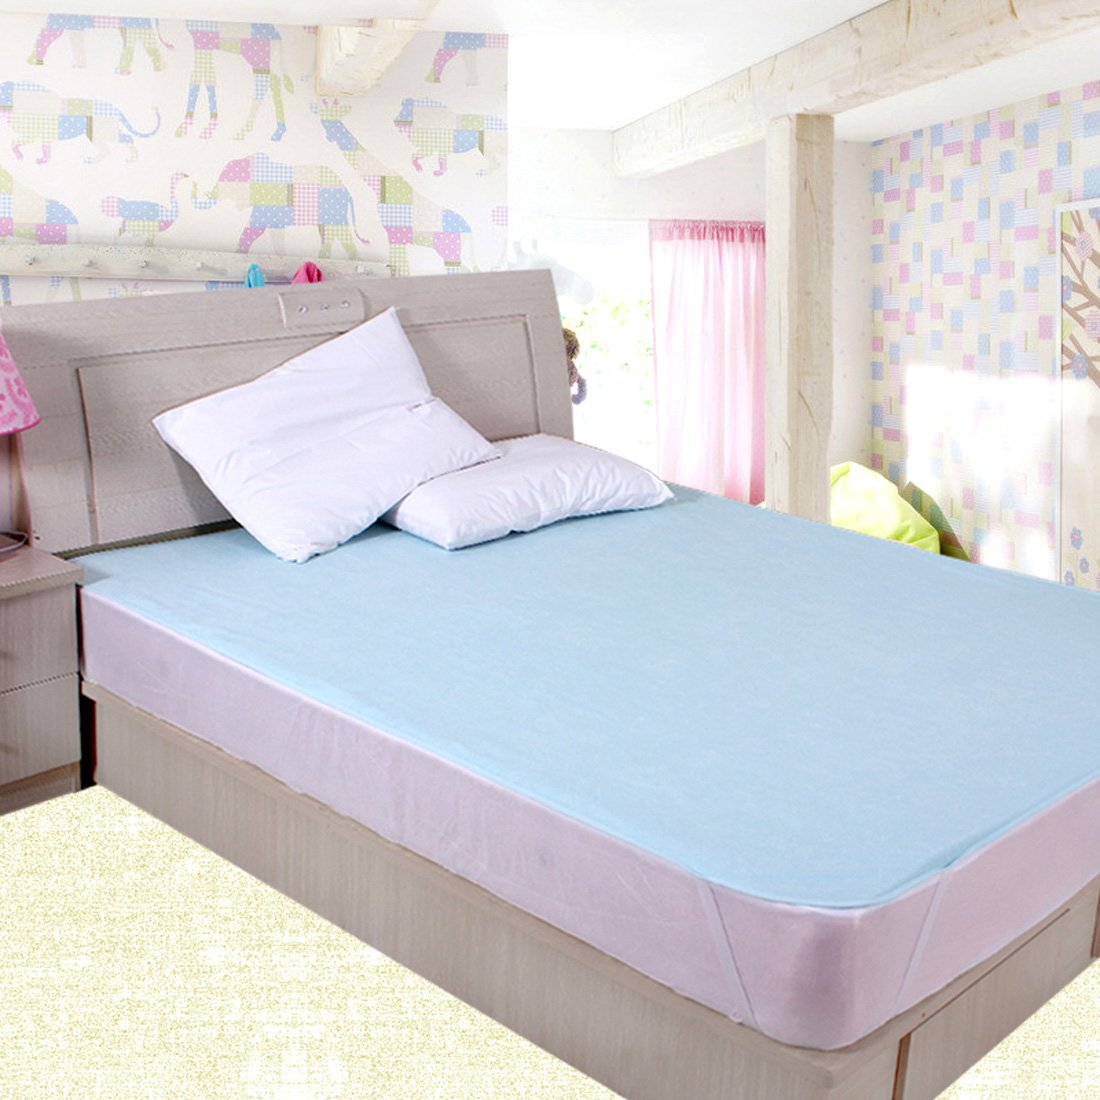 Buy Rite Clique Waterproof Double Bed Mattress Protector Sheet With